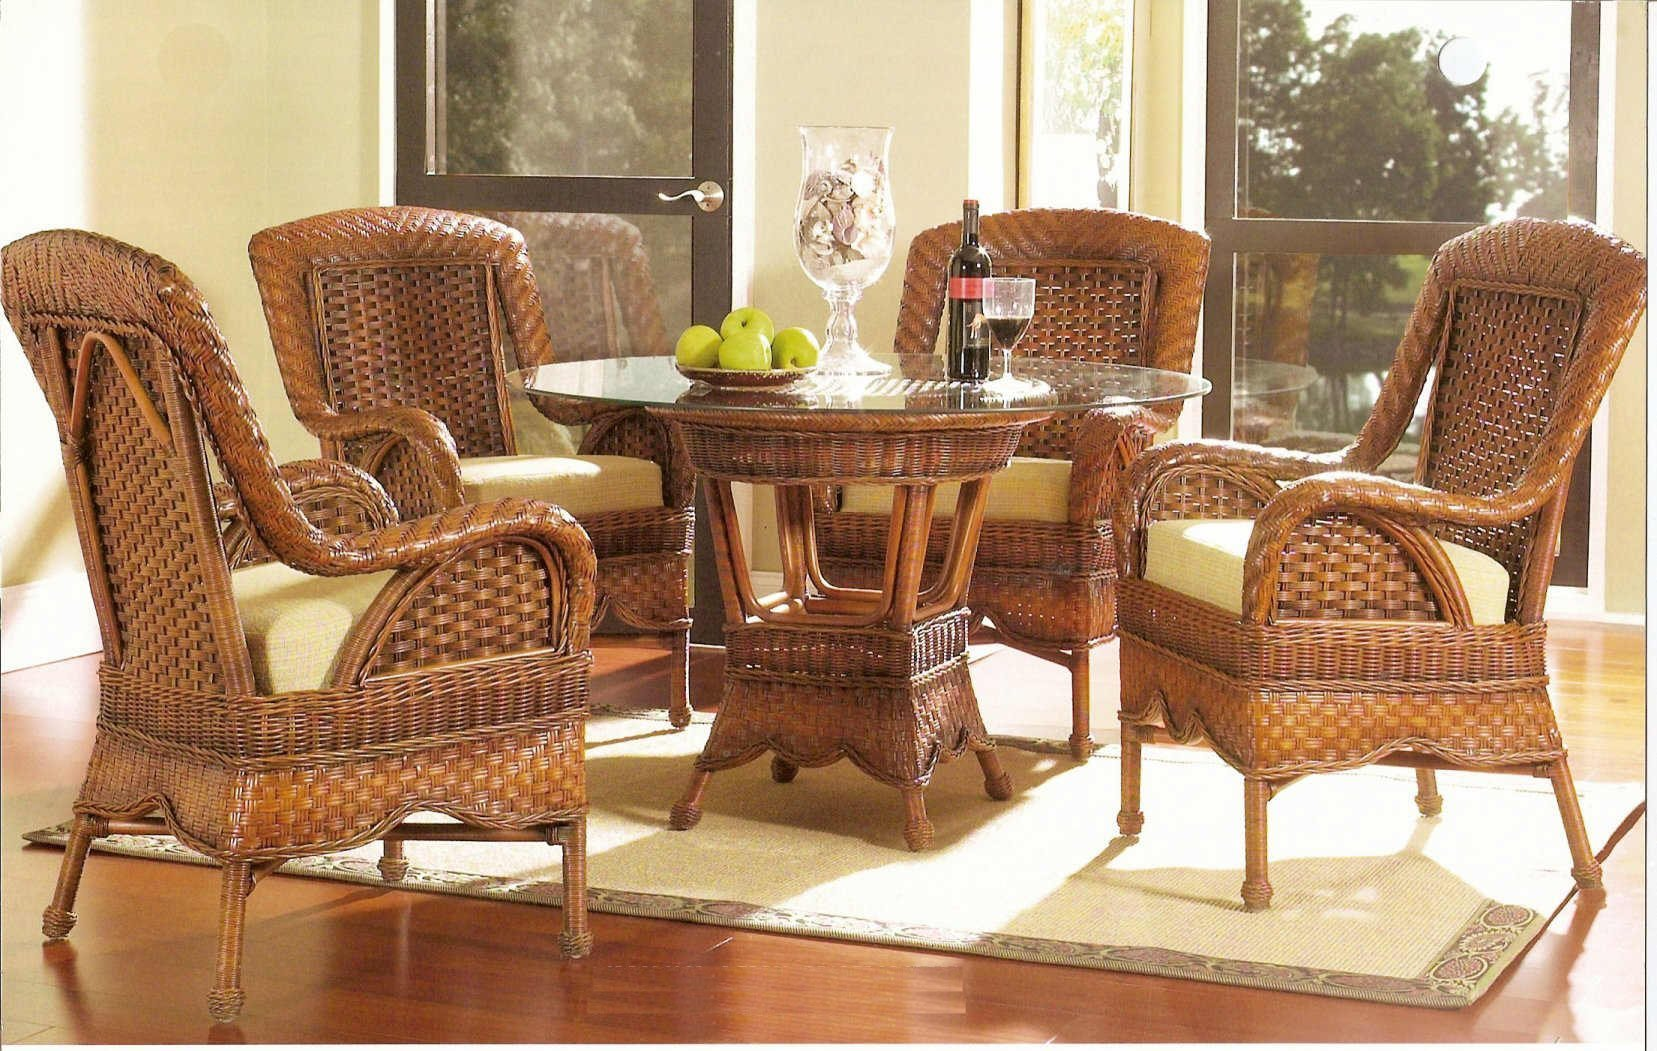 wicker furniture for a friendly and cool natural environment YWUGSZZ